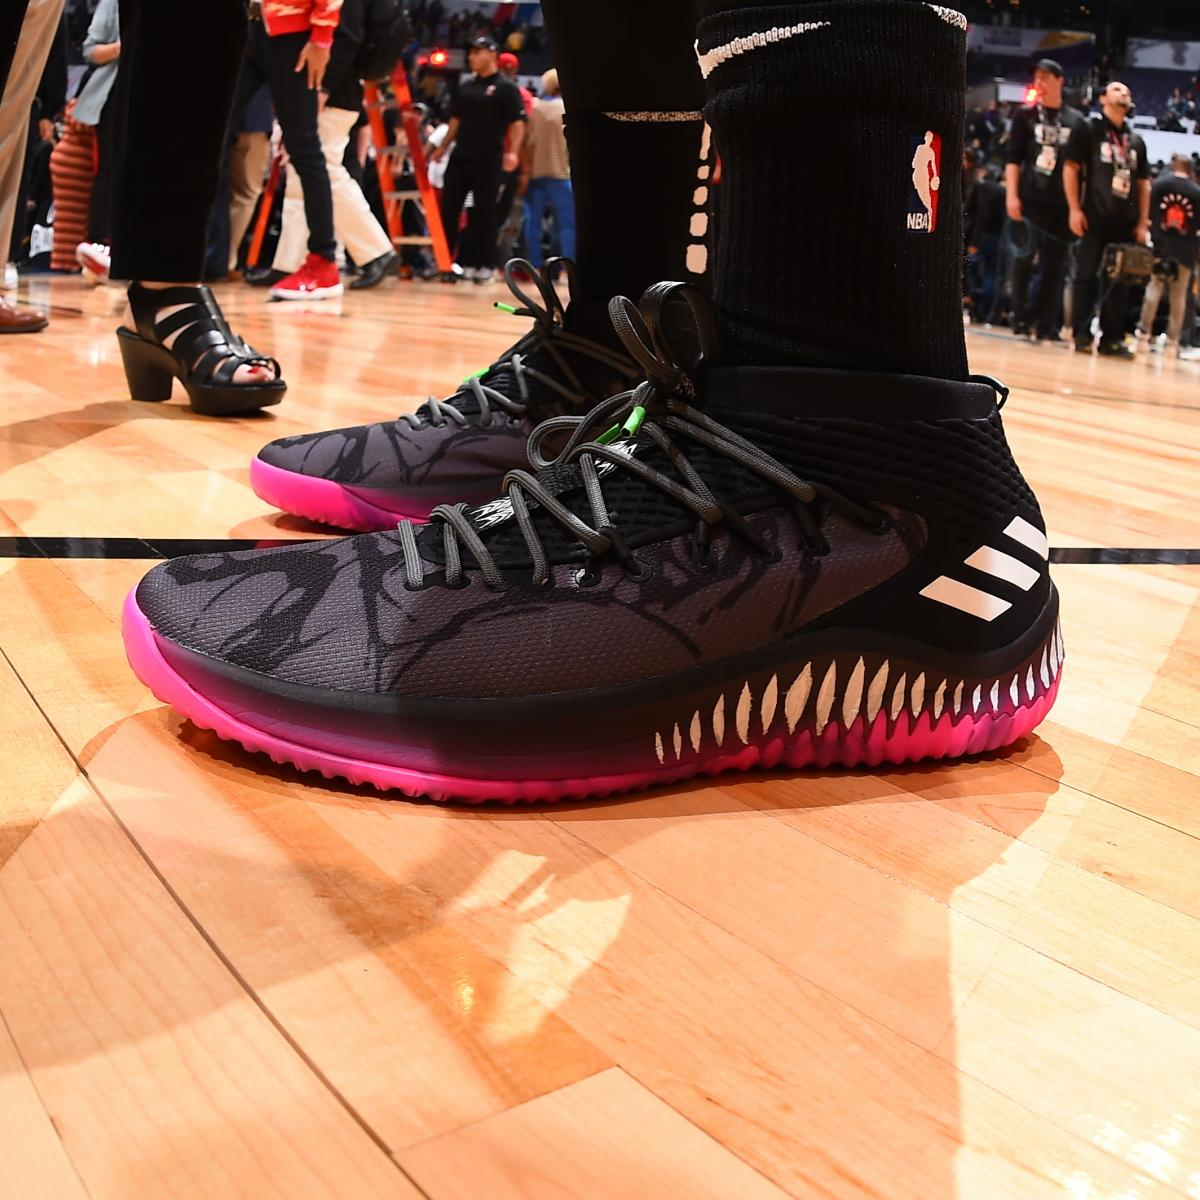 cf674e76307d9 Top Sneakers Worn During NBA All-Star Weekend 2018